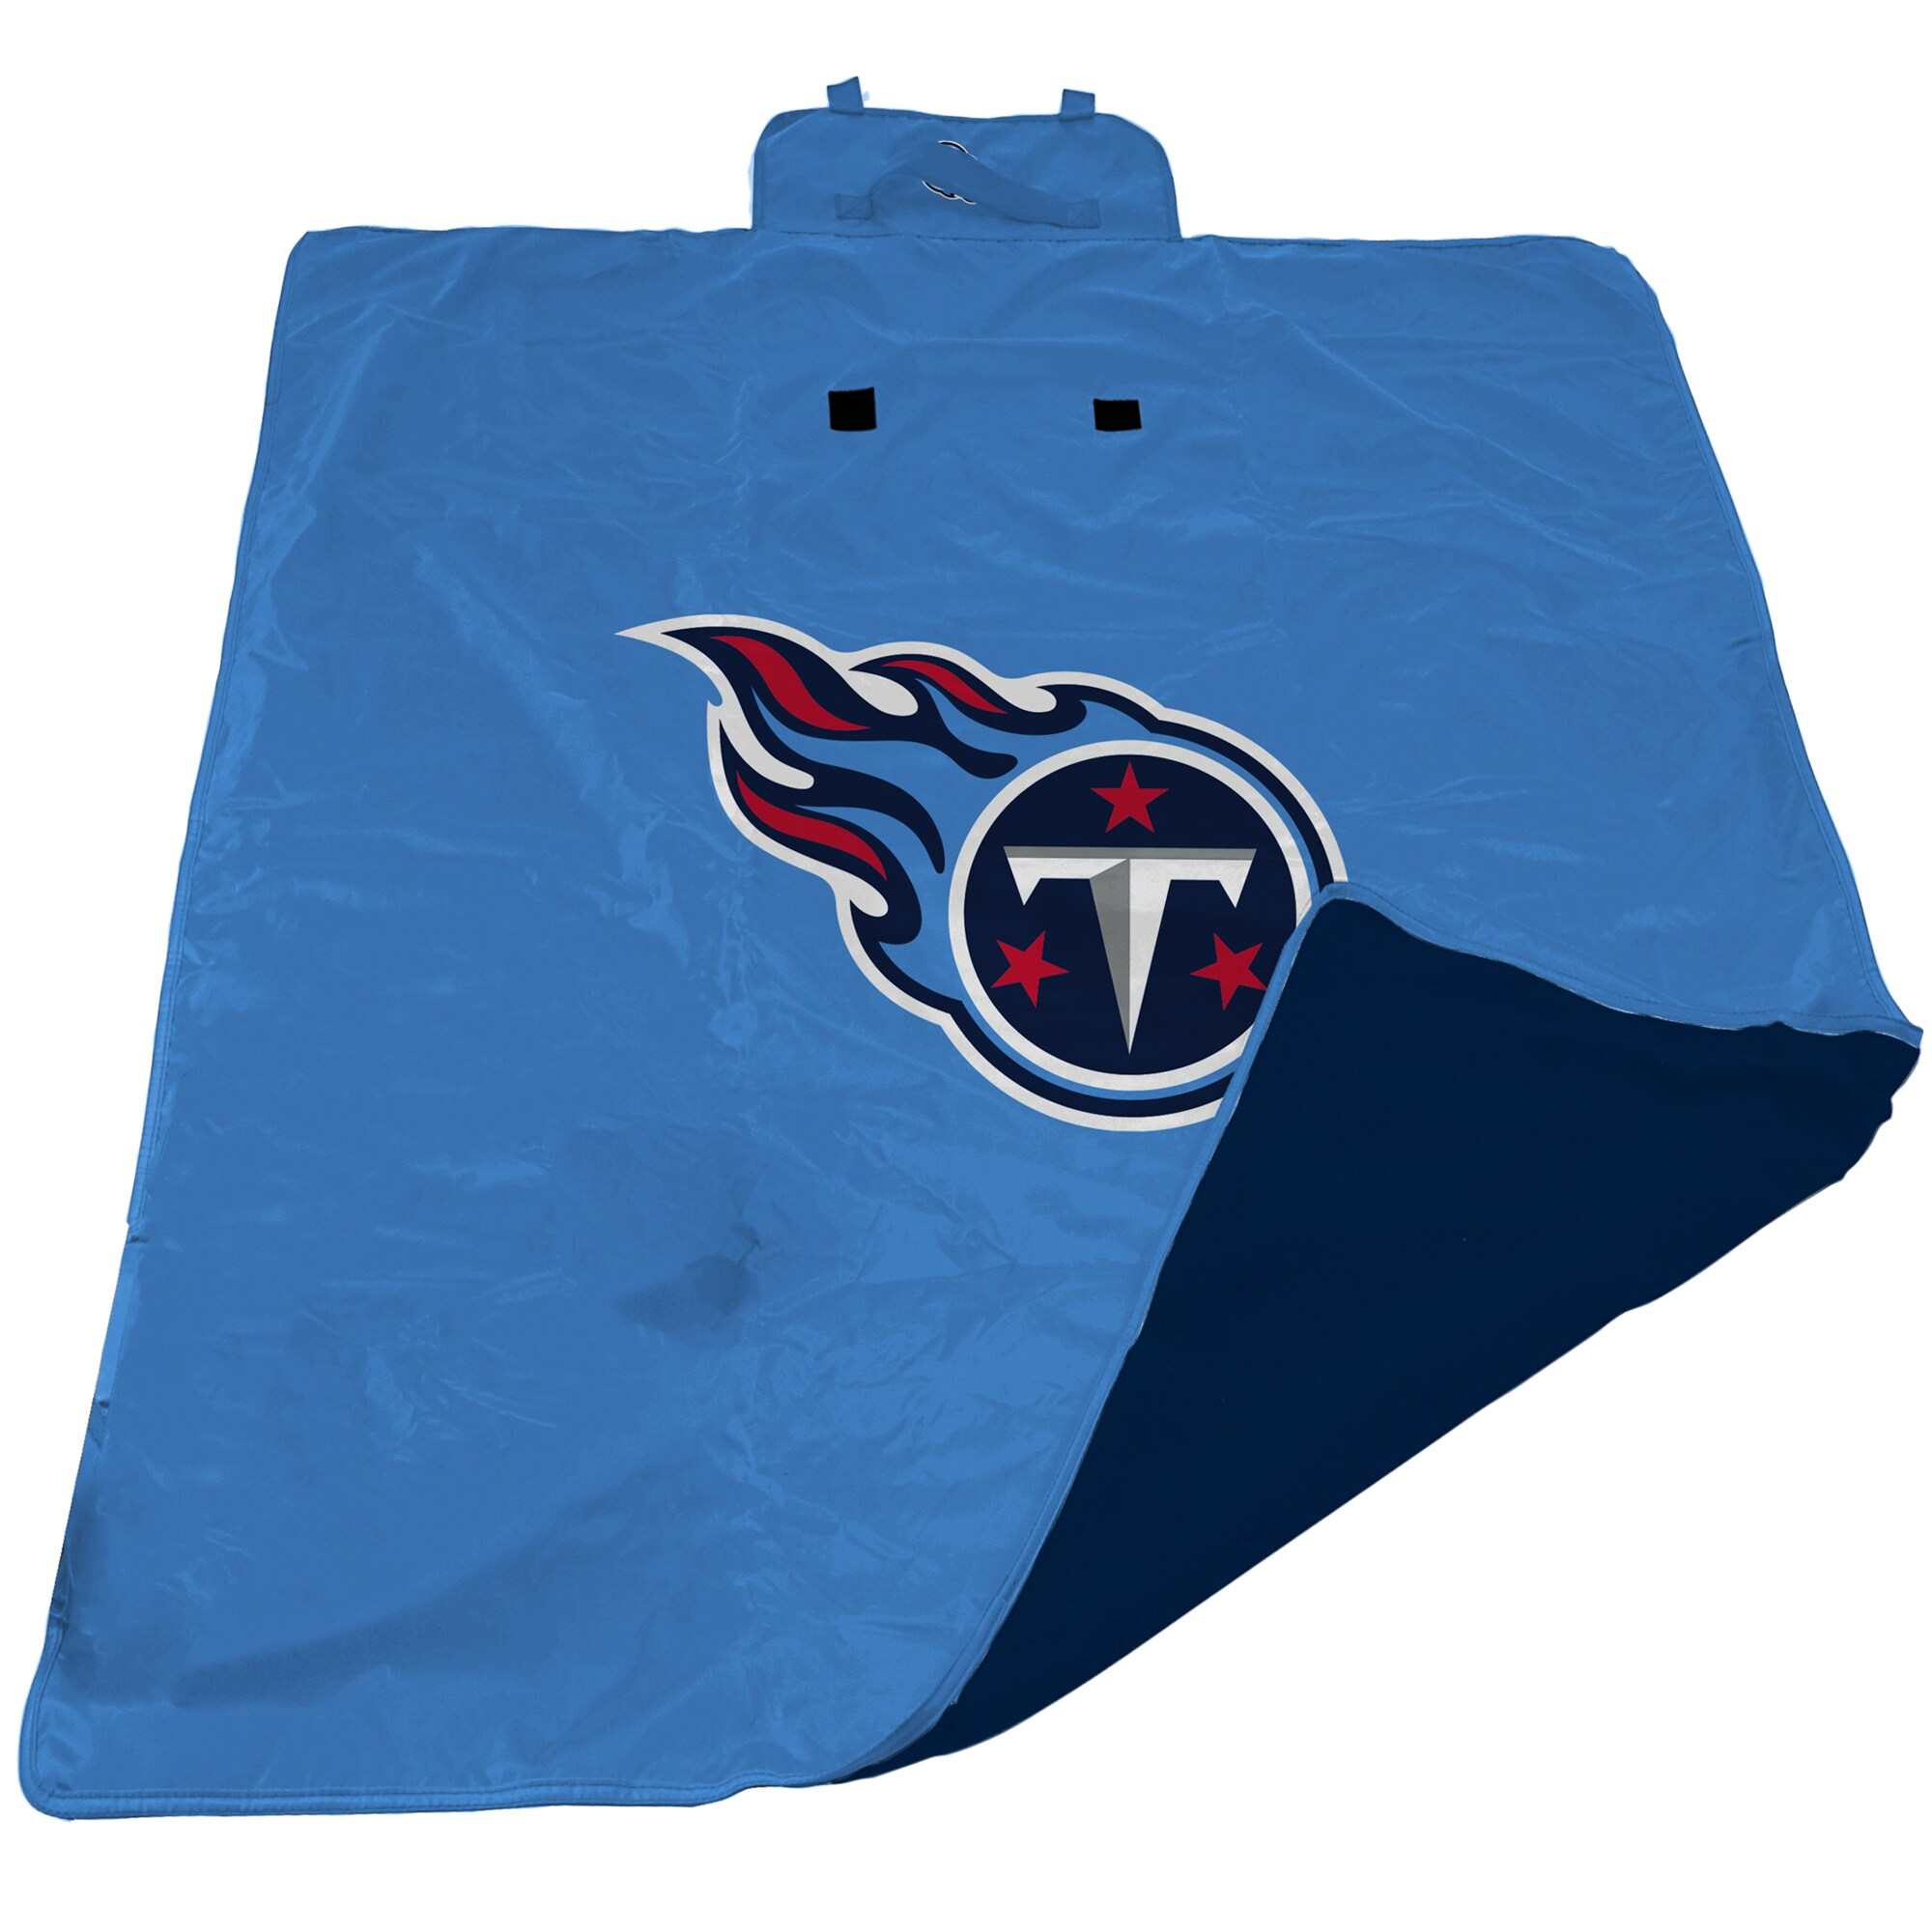 Tennessee Titans 60'' x 80'' All-Weather XL Outdoor Blanket - Powder Blue